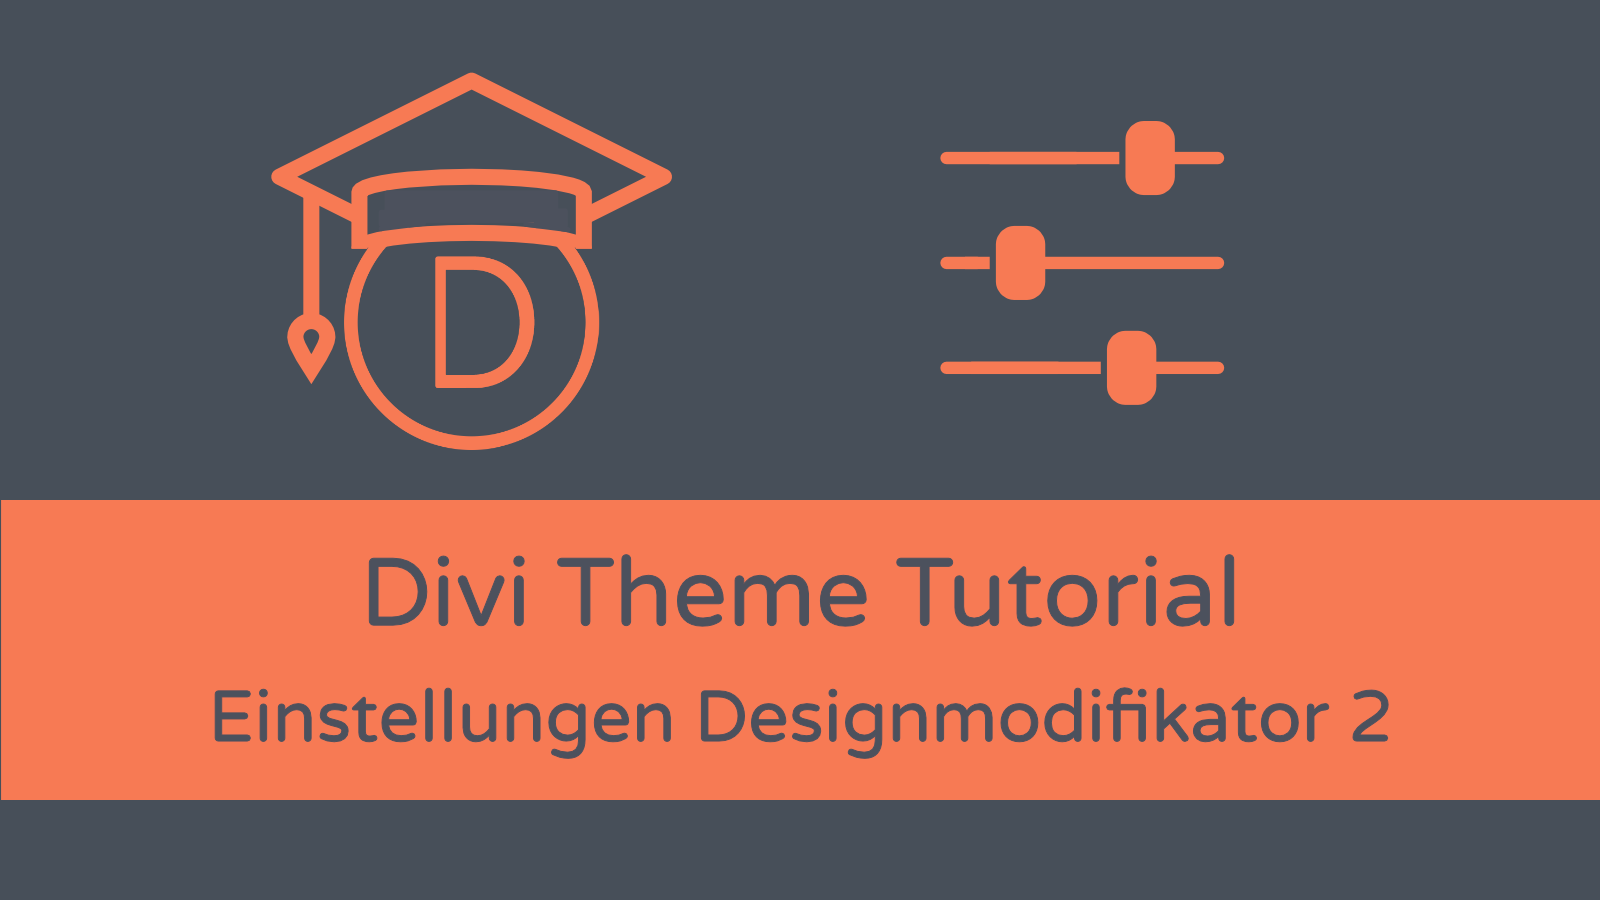 Divi Theme Designmodifikator Customizer Teil 2